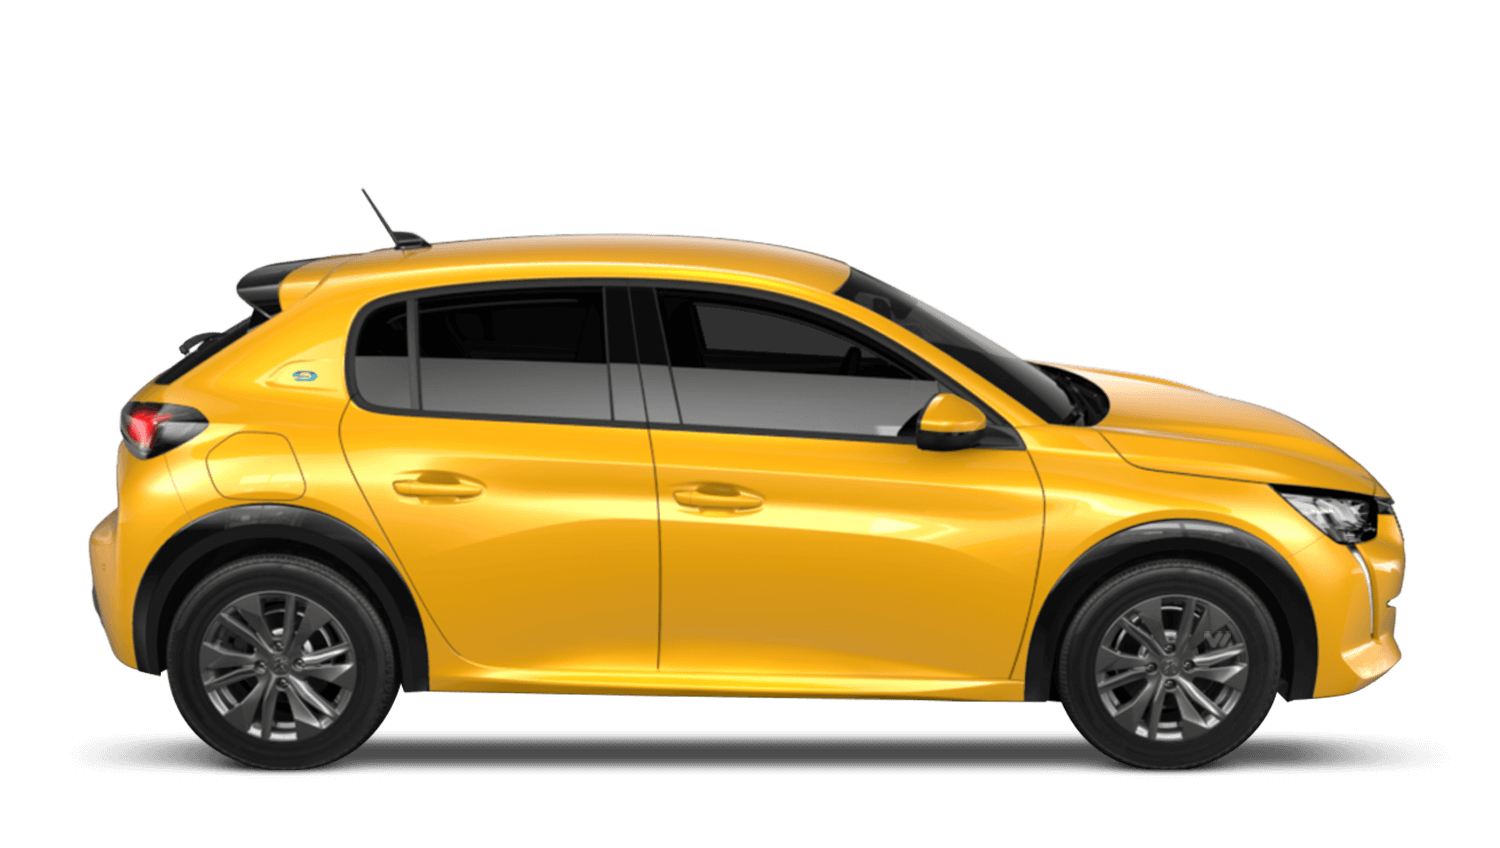 Faro Yellow All-new Peugeot e-208